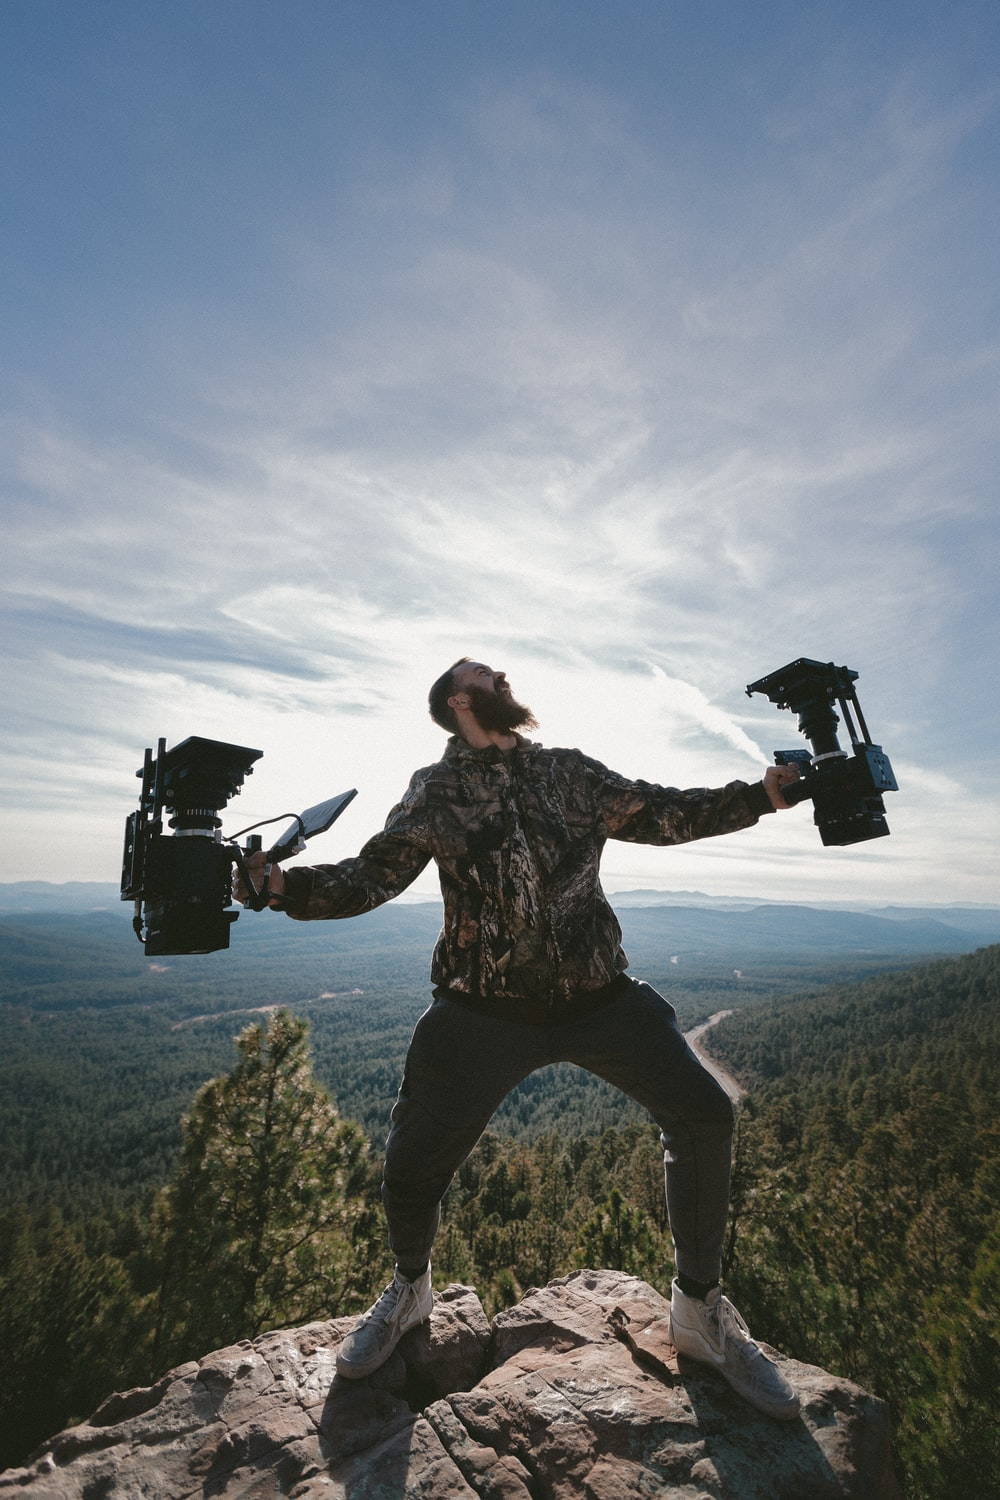 person standing on rocky mountain peak while holding two cameras